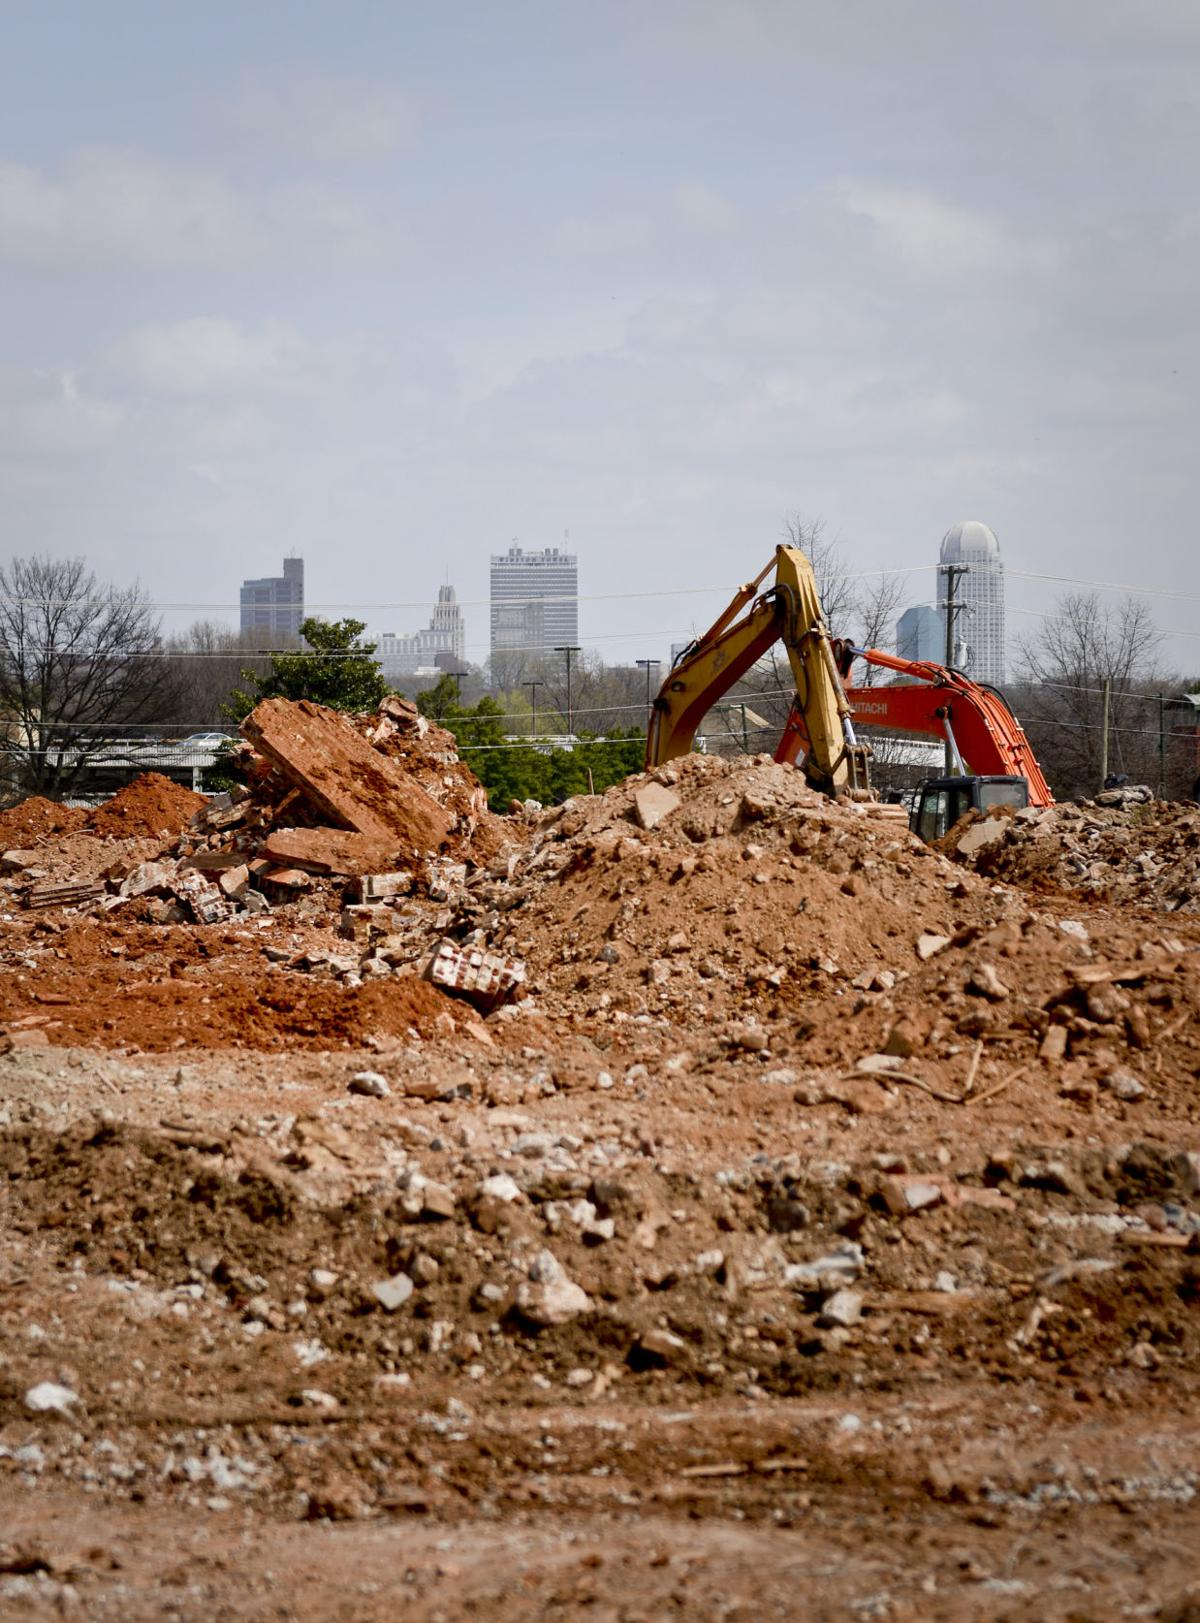 Grading under way at Miller Street site of new Publix | Local News ...